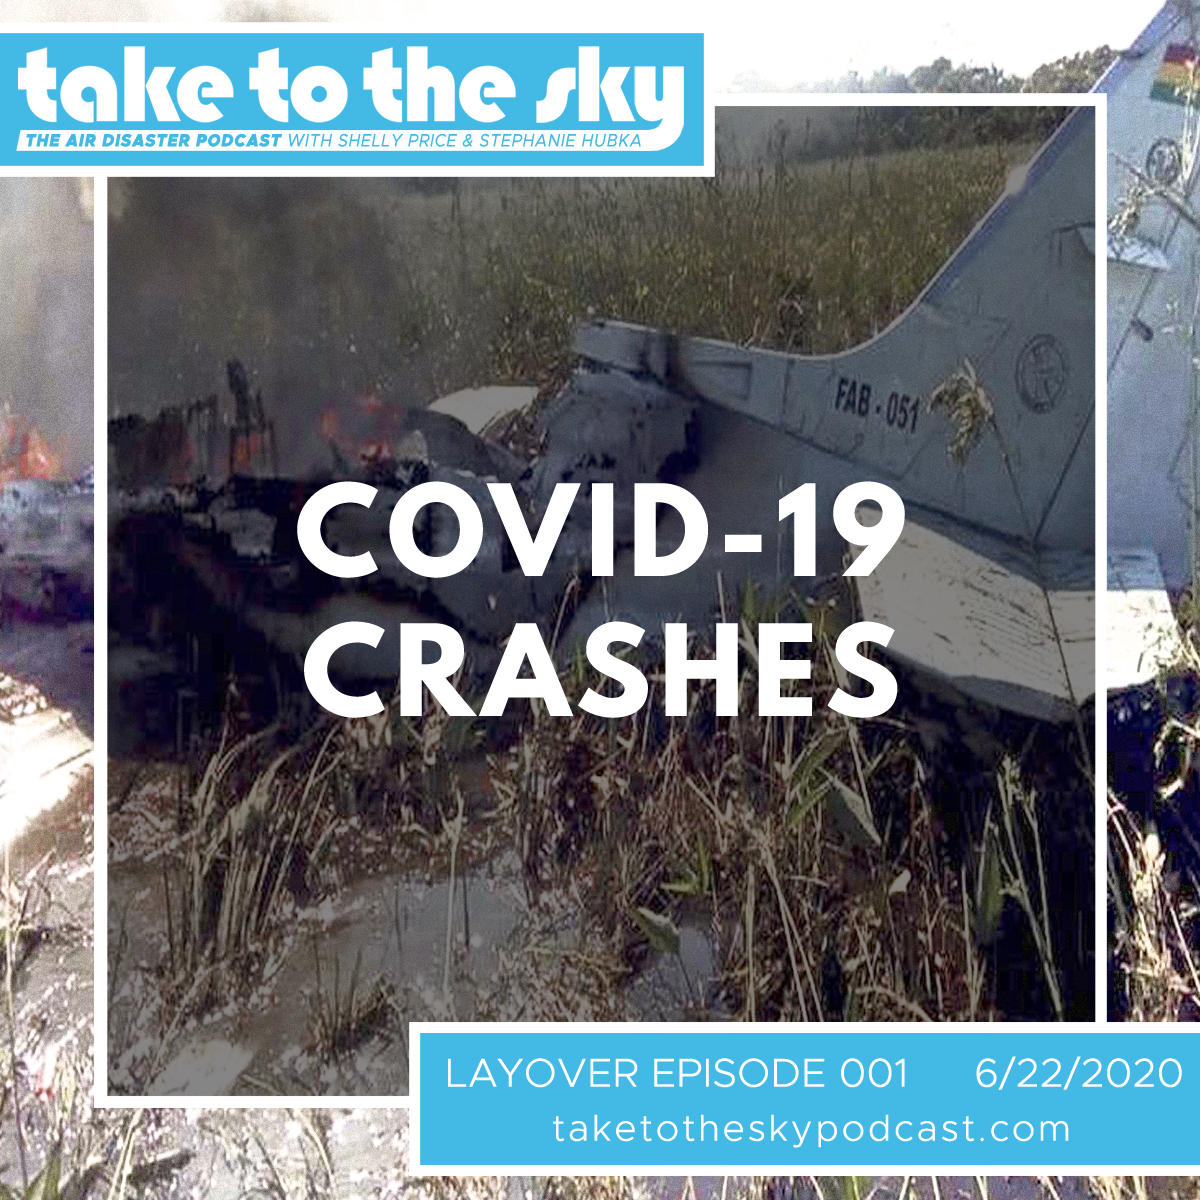 Take to the Sky Layover Episode 001: COVID-19 Crashes